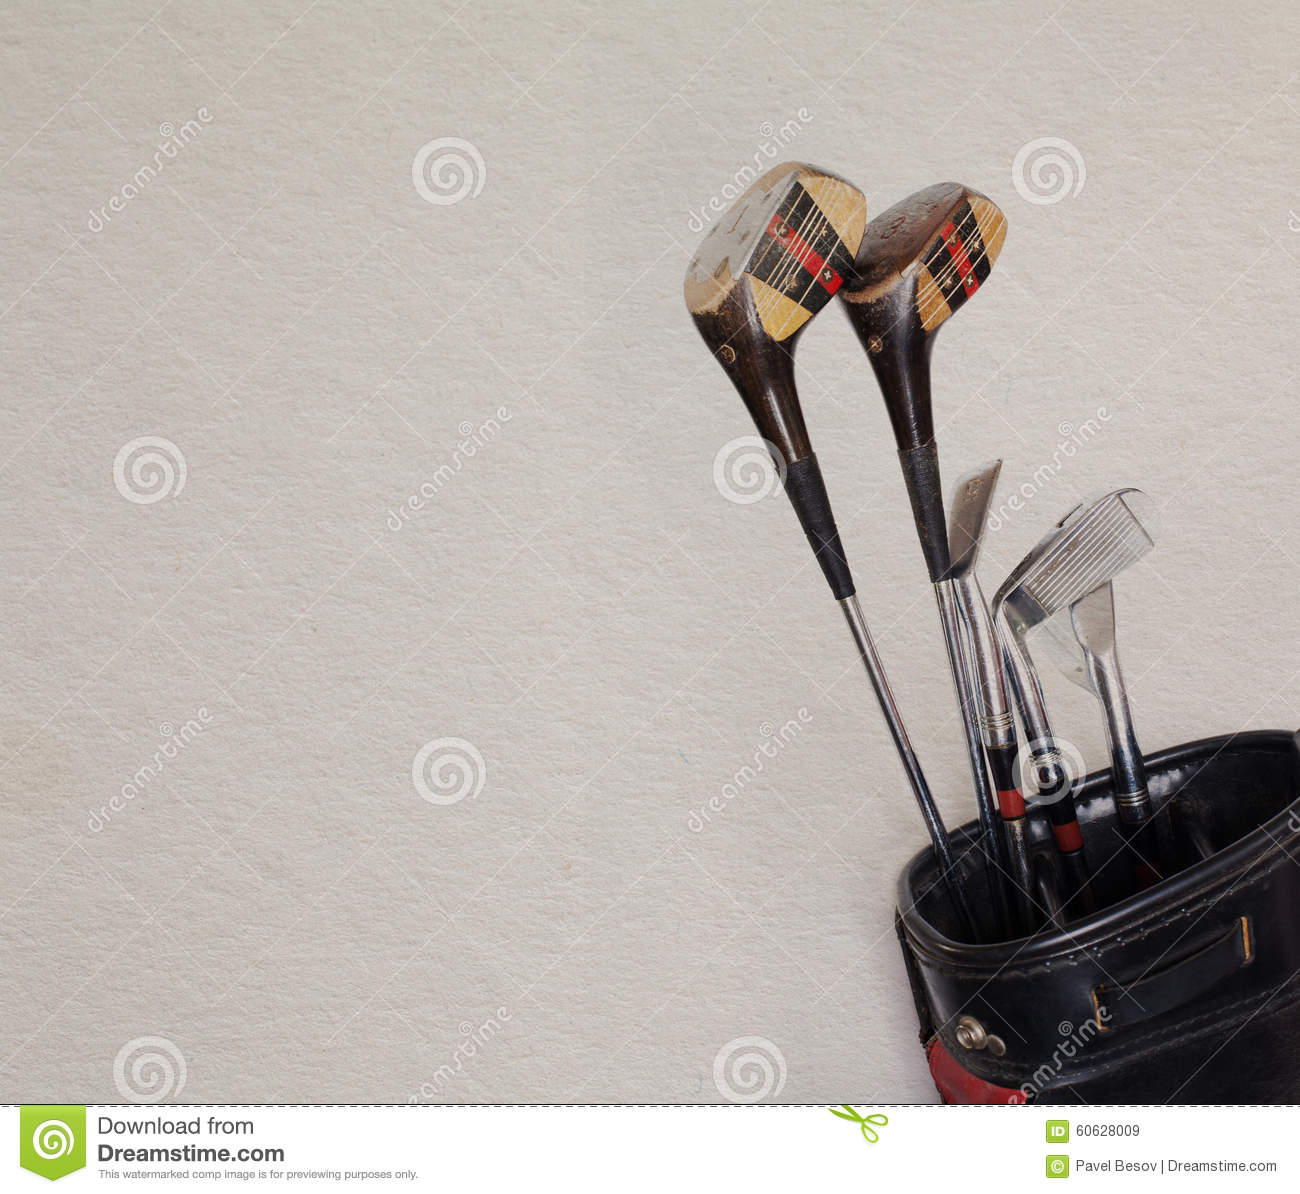 Retro golf clubs in an old leather bag, copy space